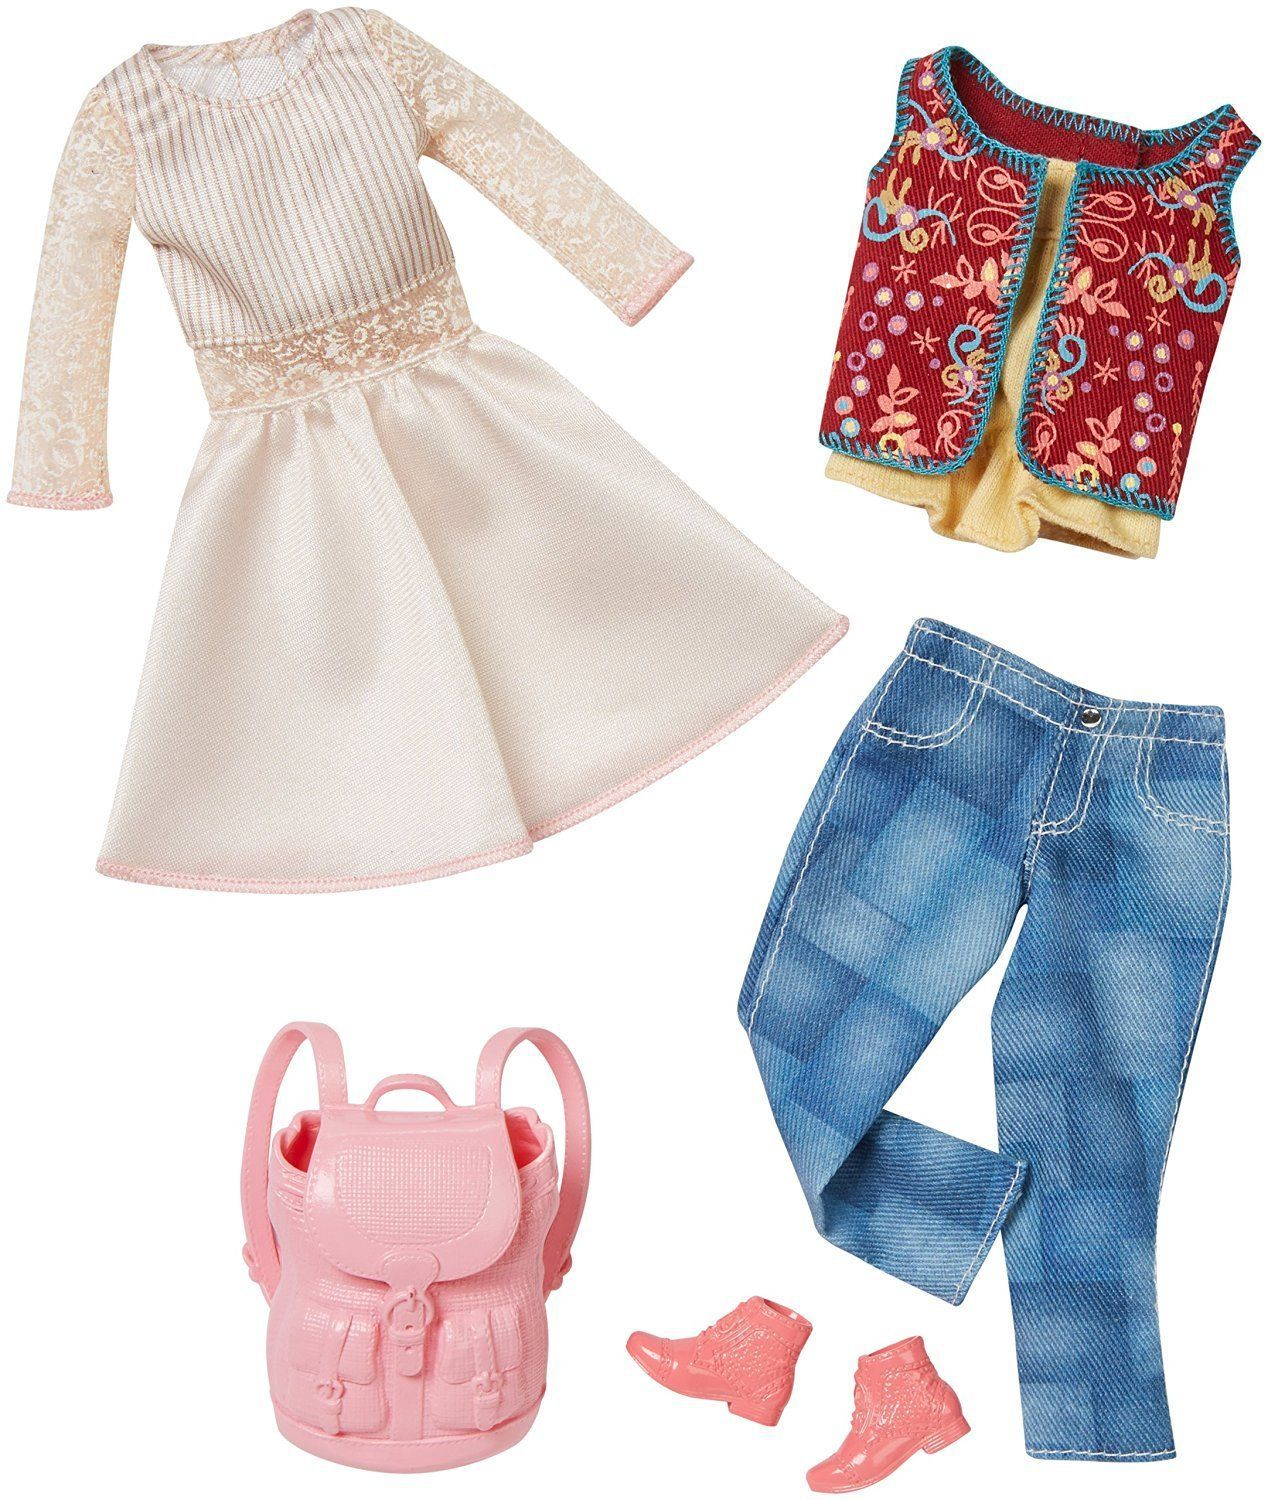 Barbie Doll Clothes 2 Pack Complete Look Fashions White